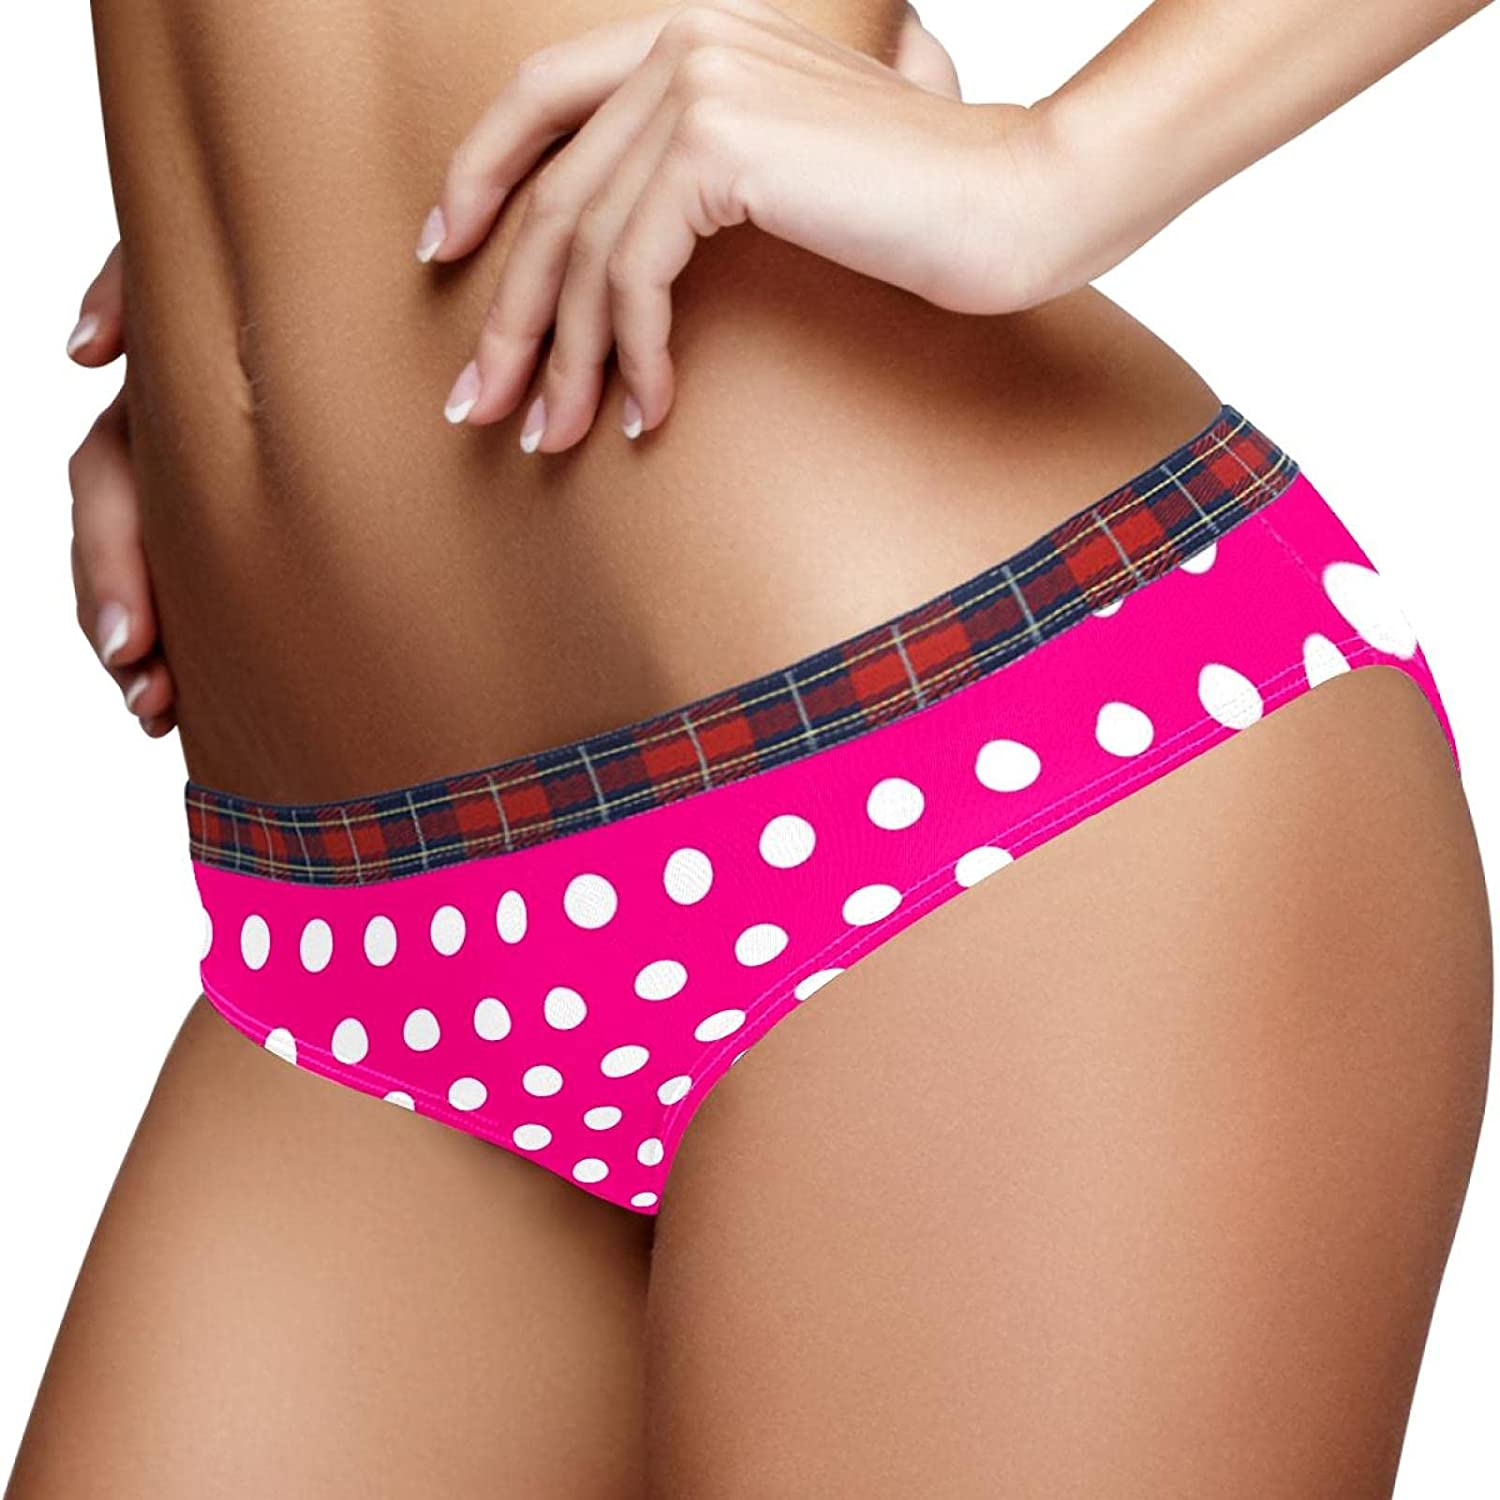 Stretch Bikini Gifts Panty S Polka Dots Briefs Ladies Rose Hipster Tucson Mall Red